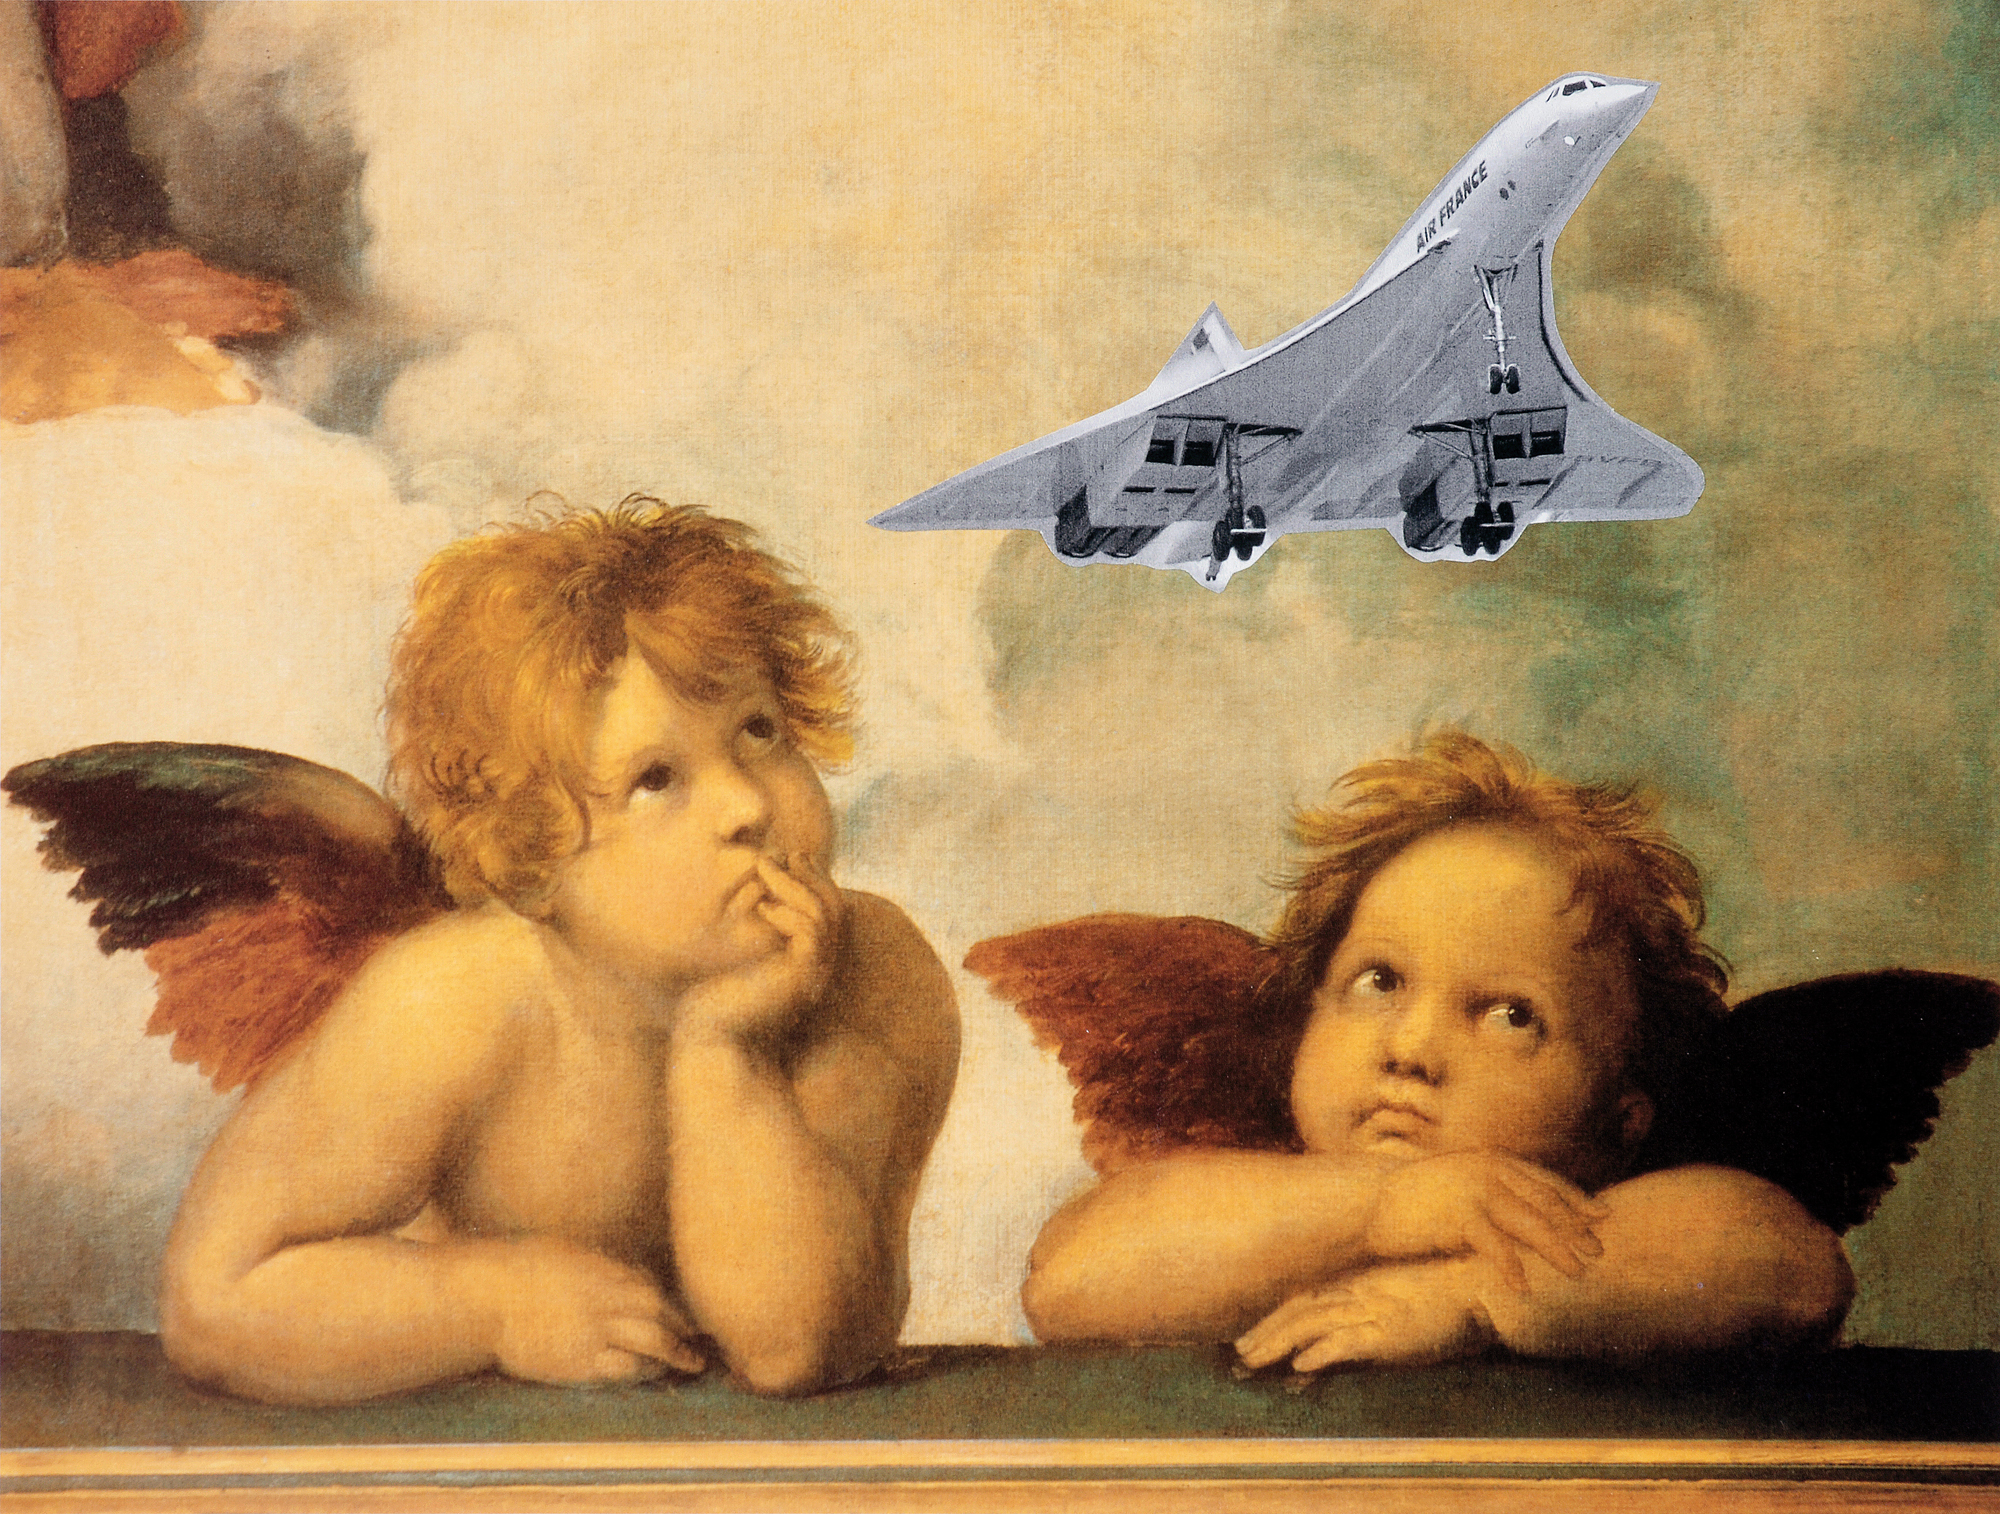 the concorde project essay 1 the concorde project can be regarded as a technical and engineering triumph but a commercial disaster what is the criterion for judging the success of.